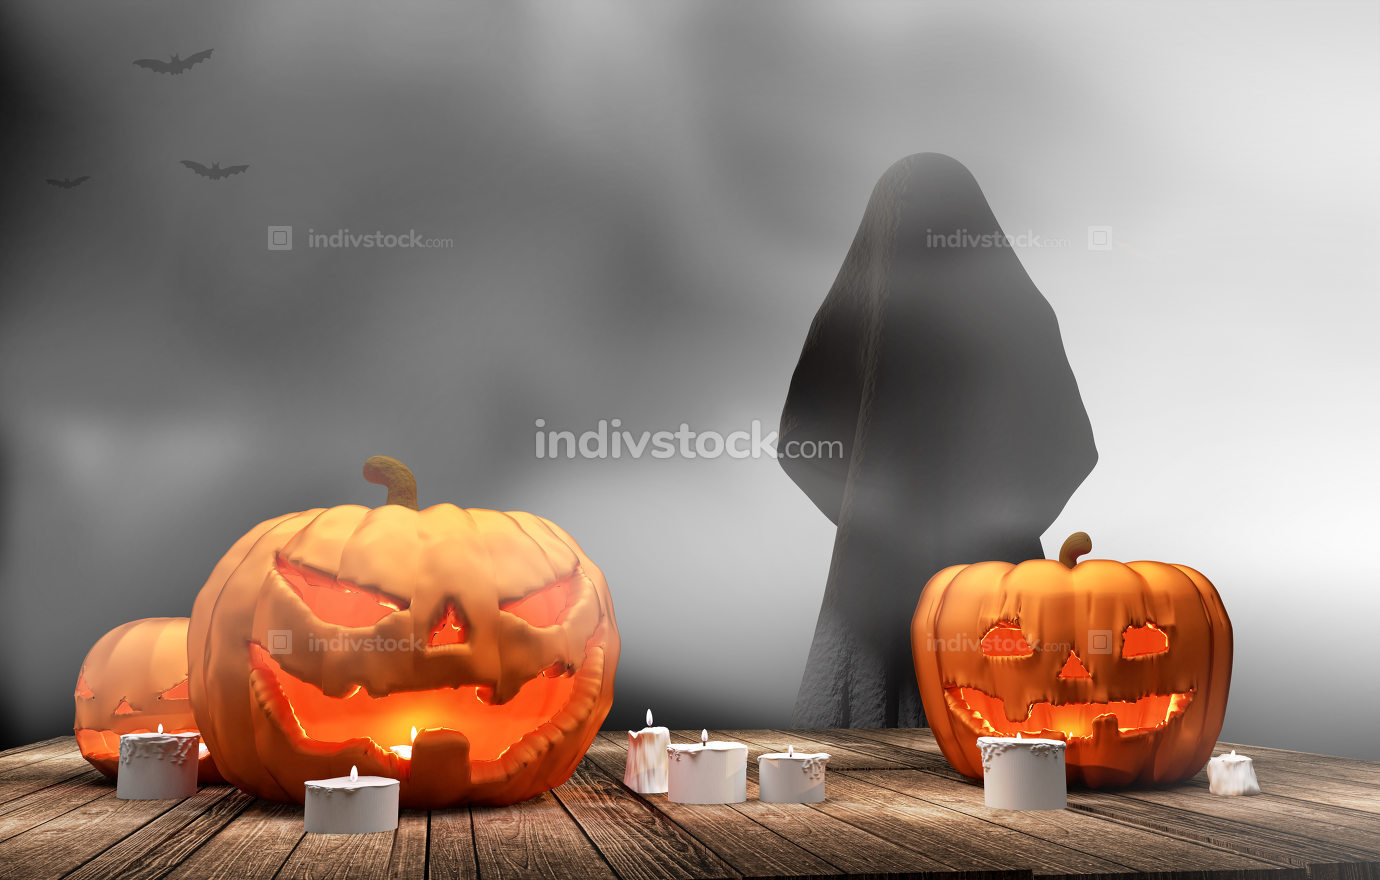 free download: pumpkins Halloween 3d rendering